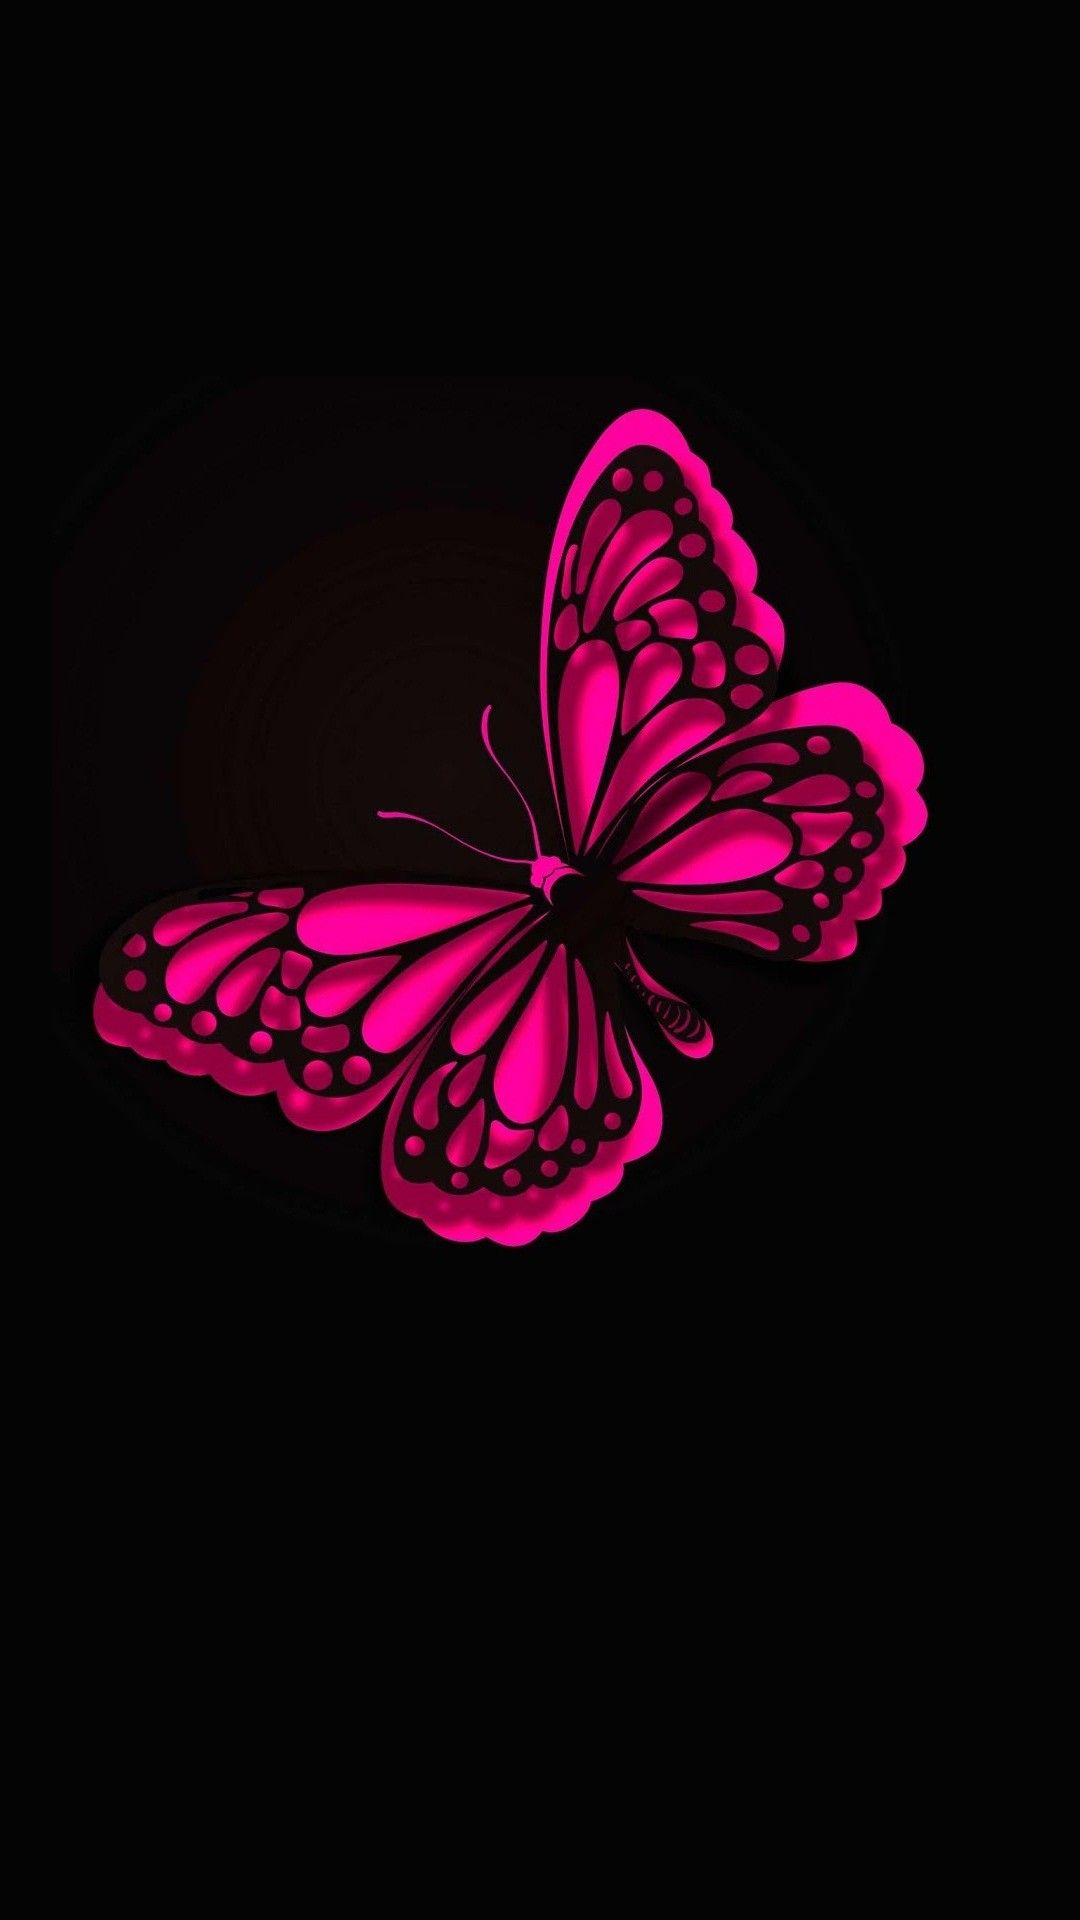 iPhone Wallpaper HD Pink Butterfly